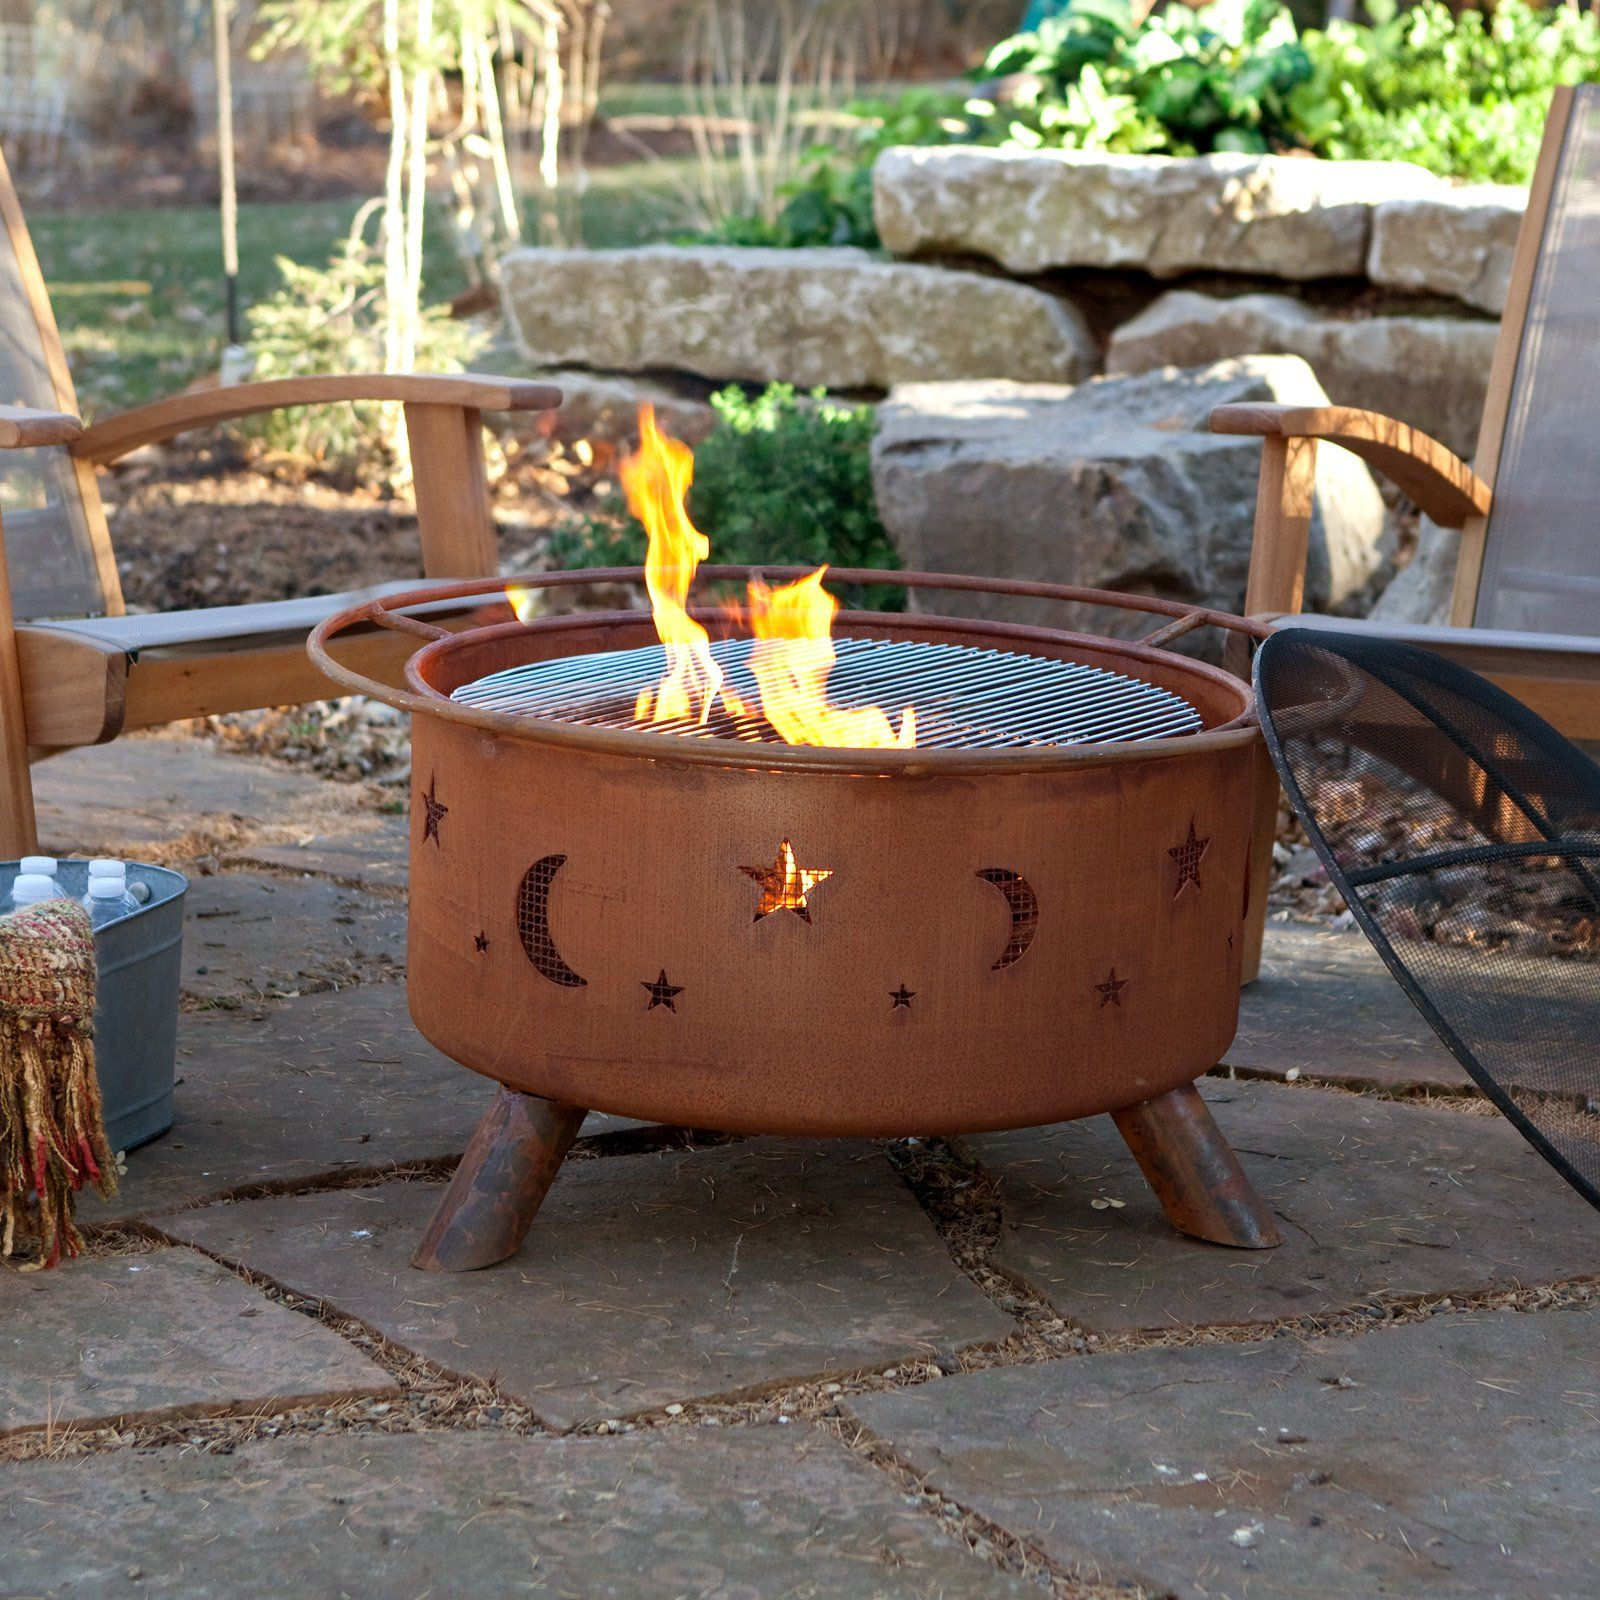 05bac5ffd4f7ff873a9722cffcee2b4e Top Result 50 Awesome Rustic Fire Pit